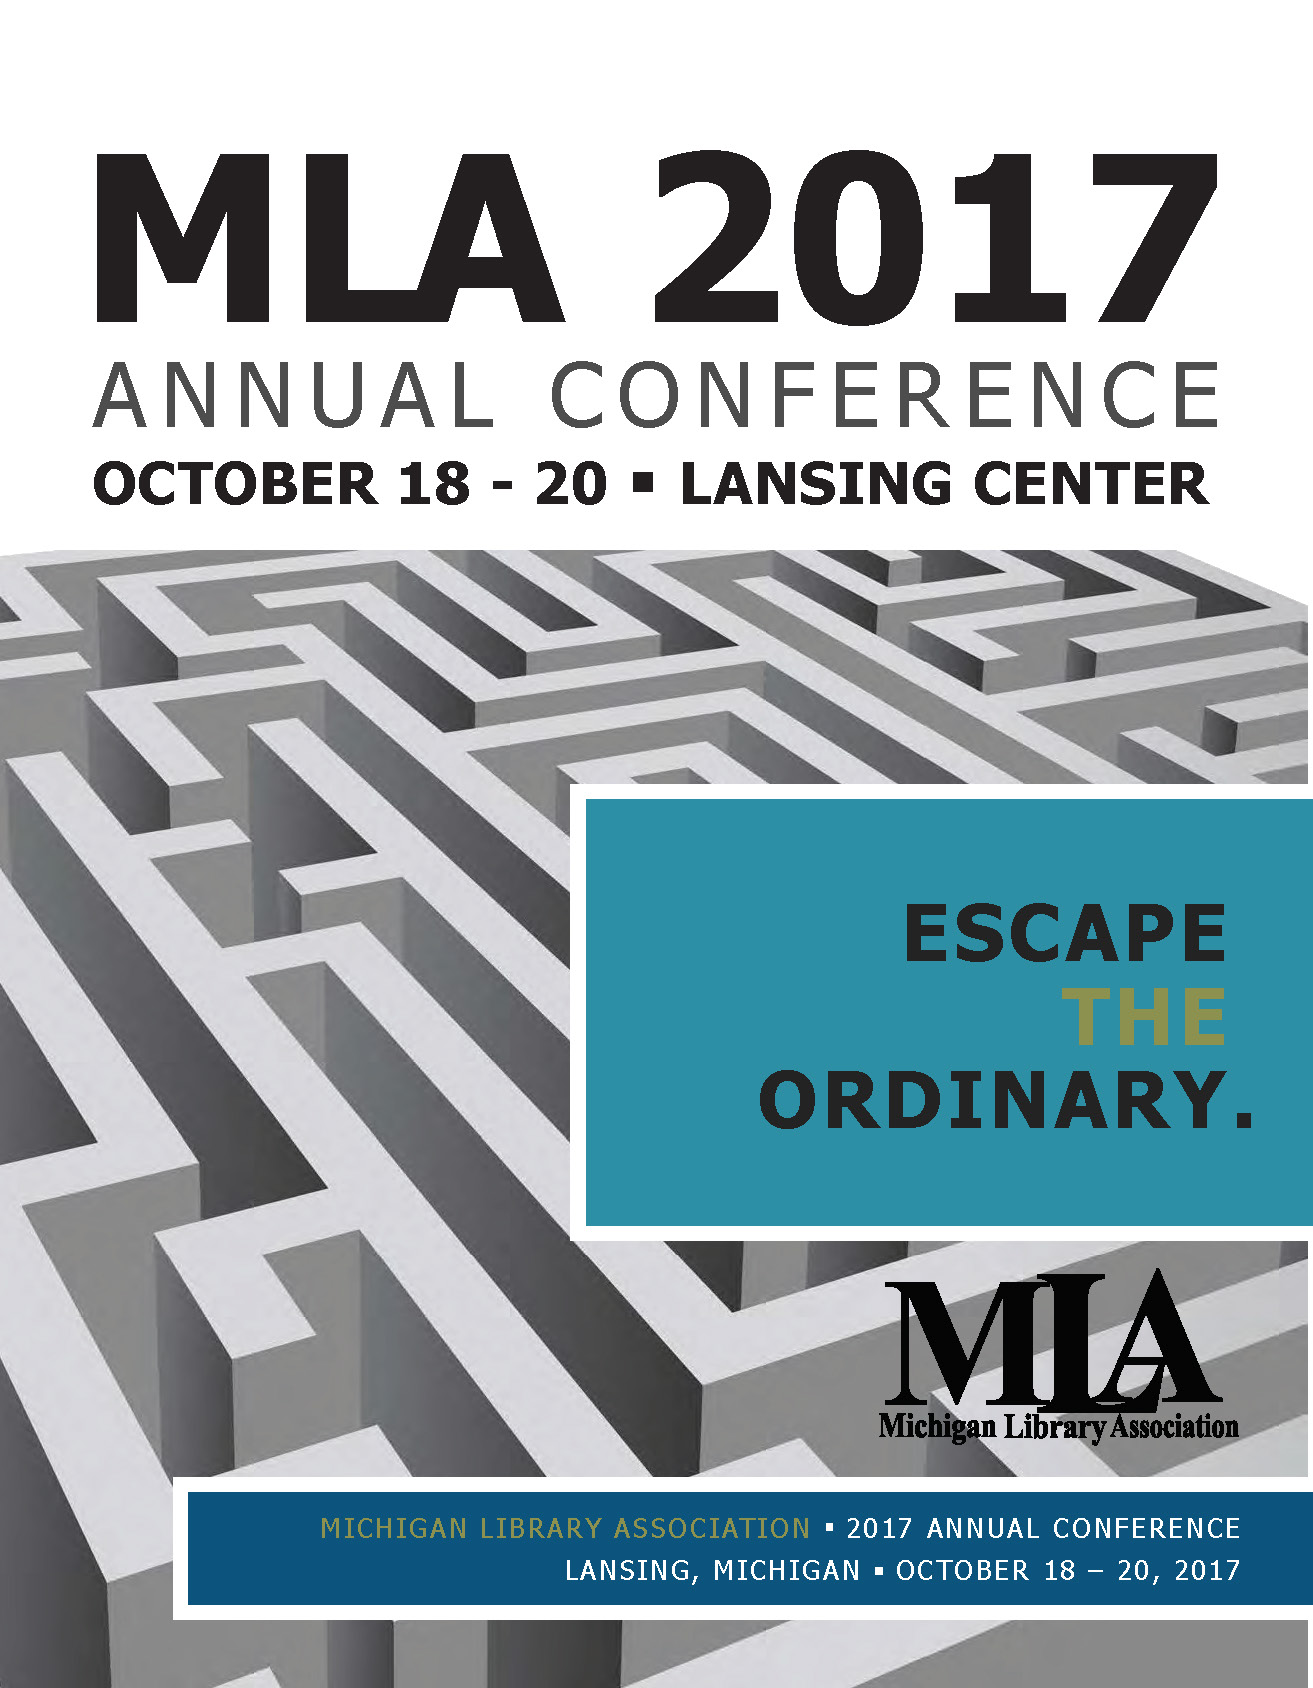 MLA 2017 Program Book Cover image - linked to program book pdf